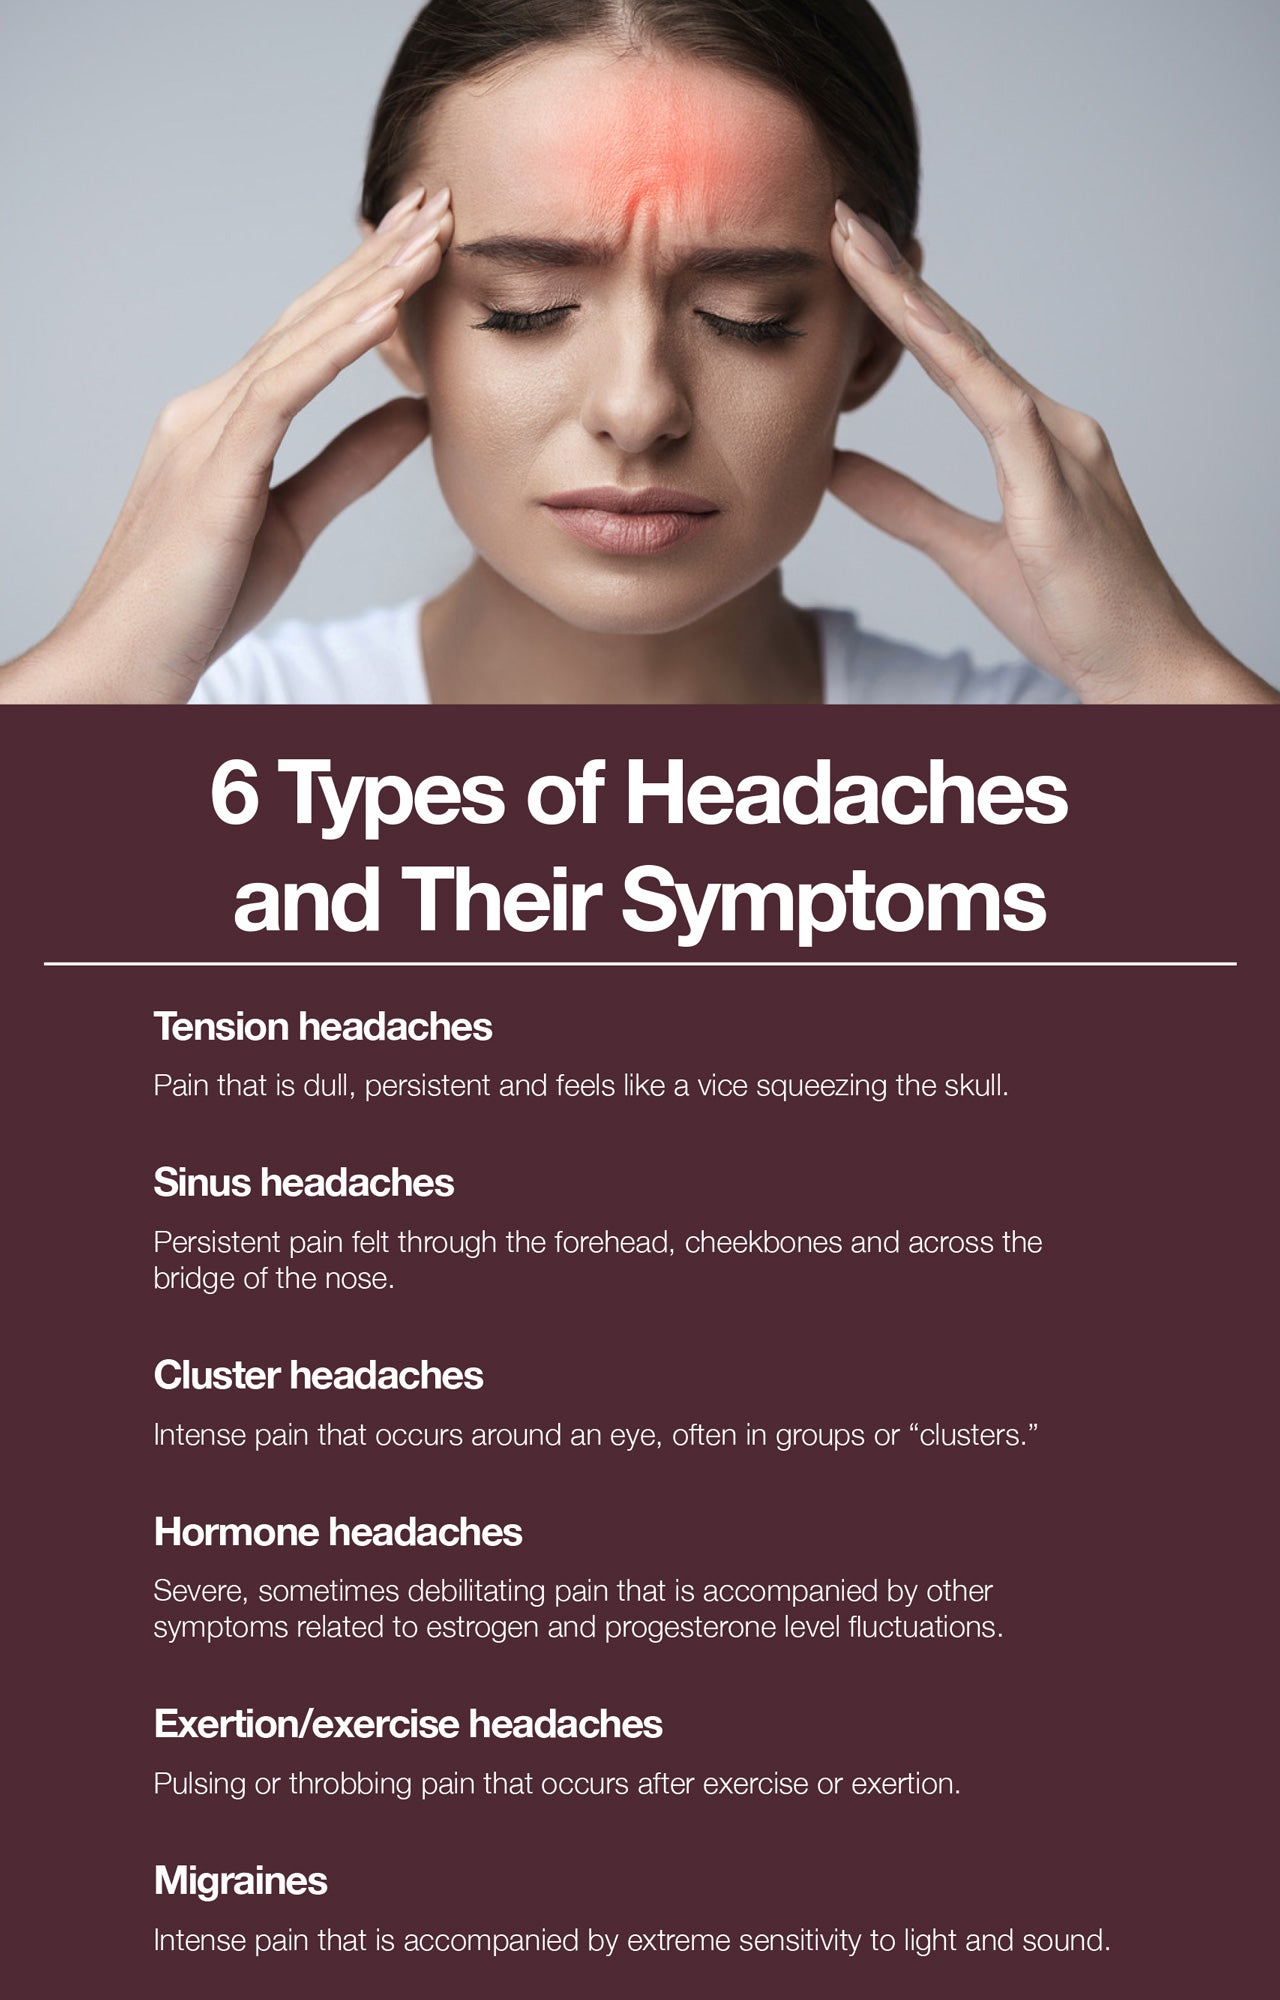 Here are the 6 types of headaches and their symptoms.